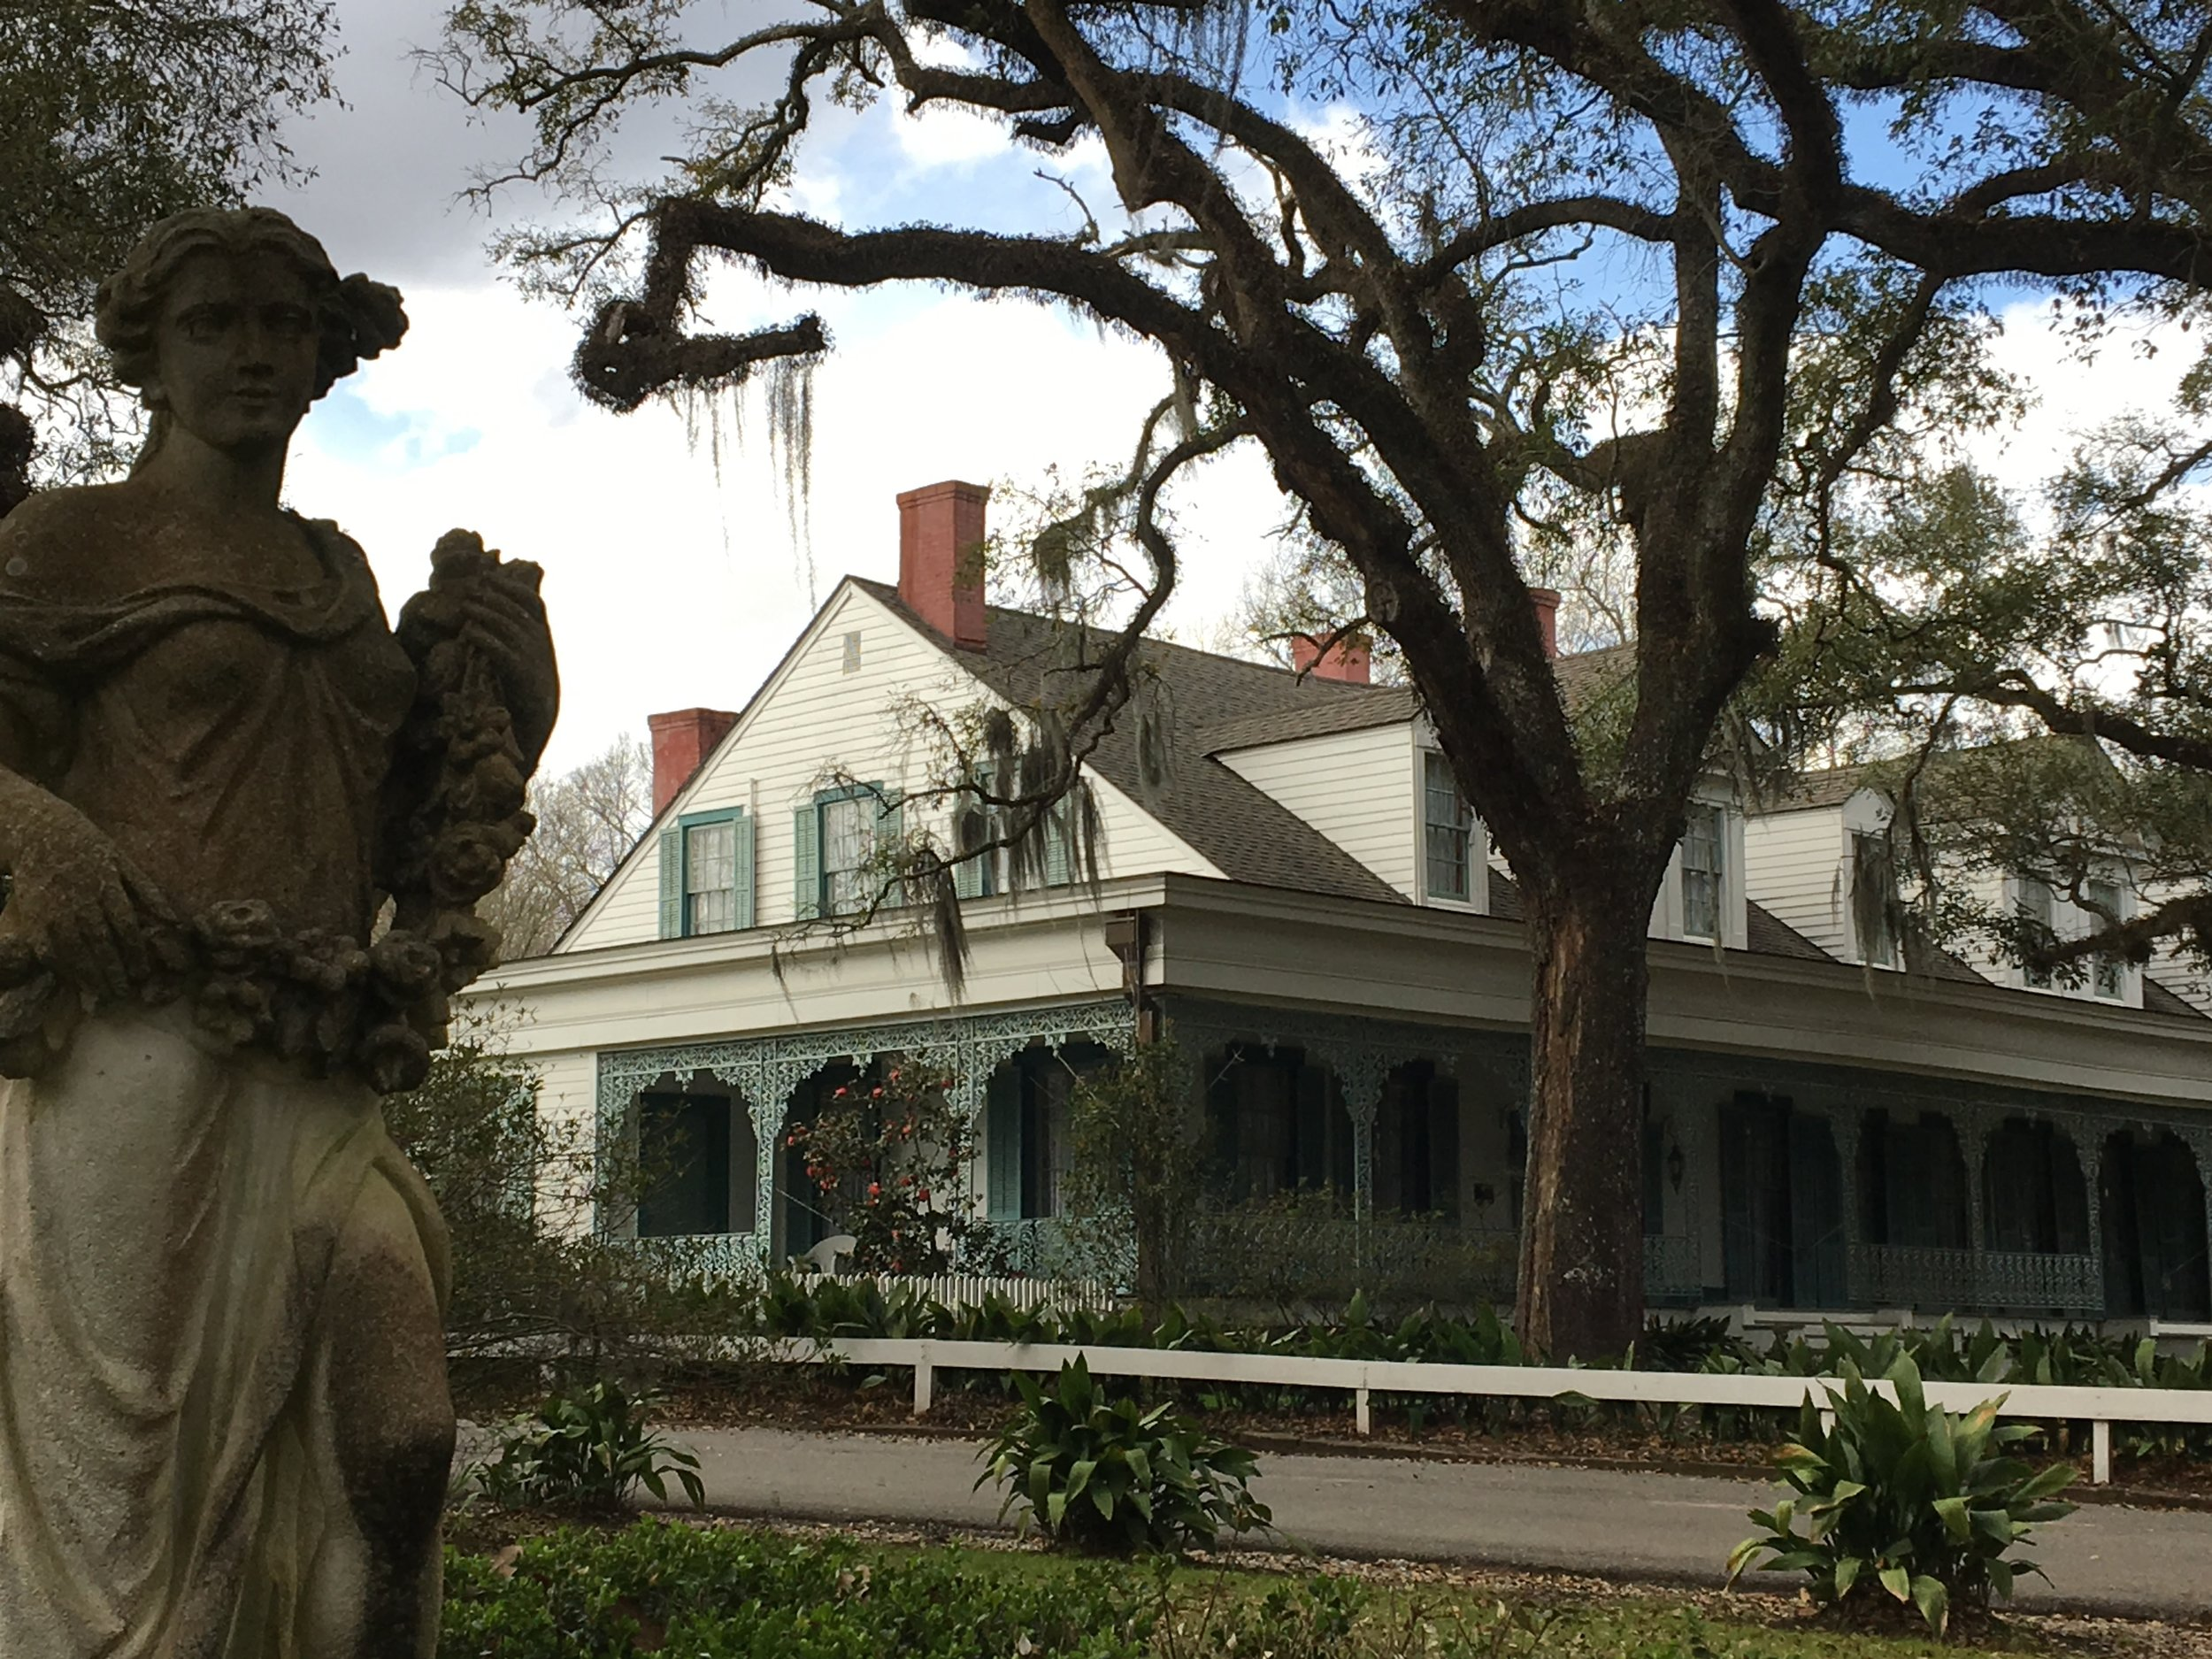 Outside Myrtles Plantation, one of the most haunted places in the United States.